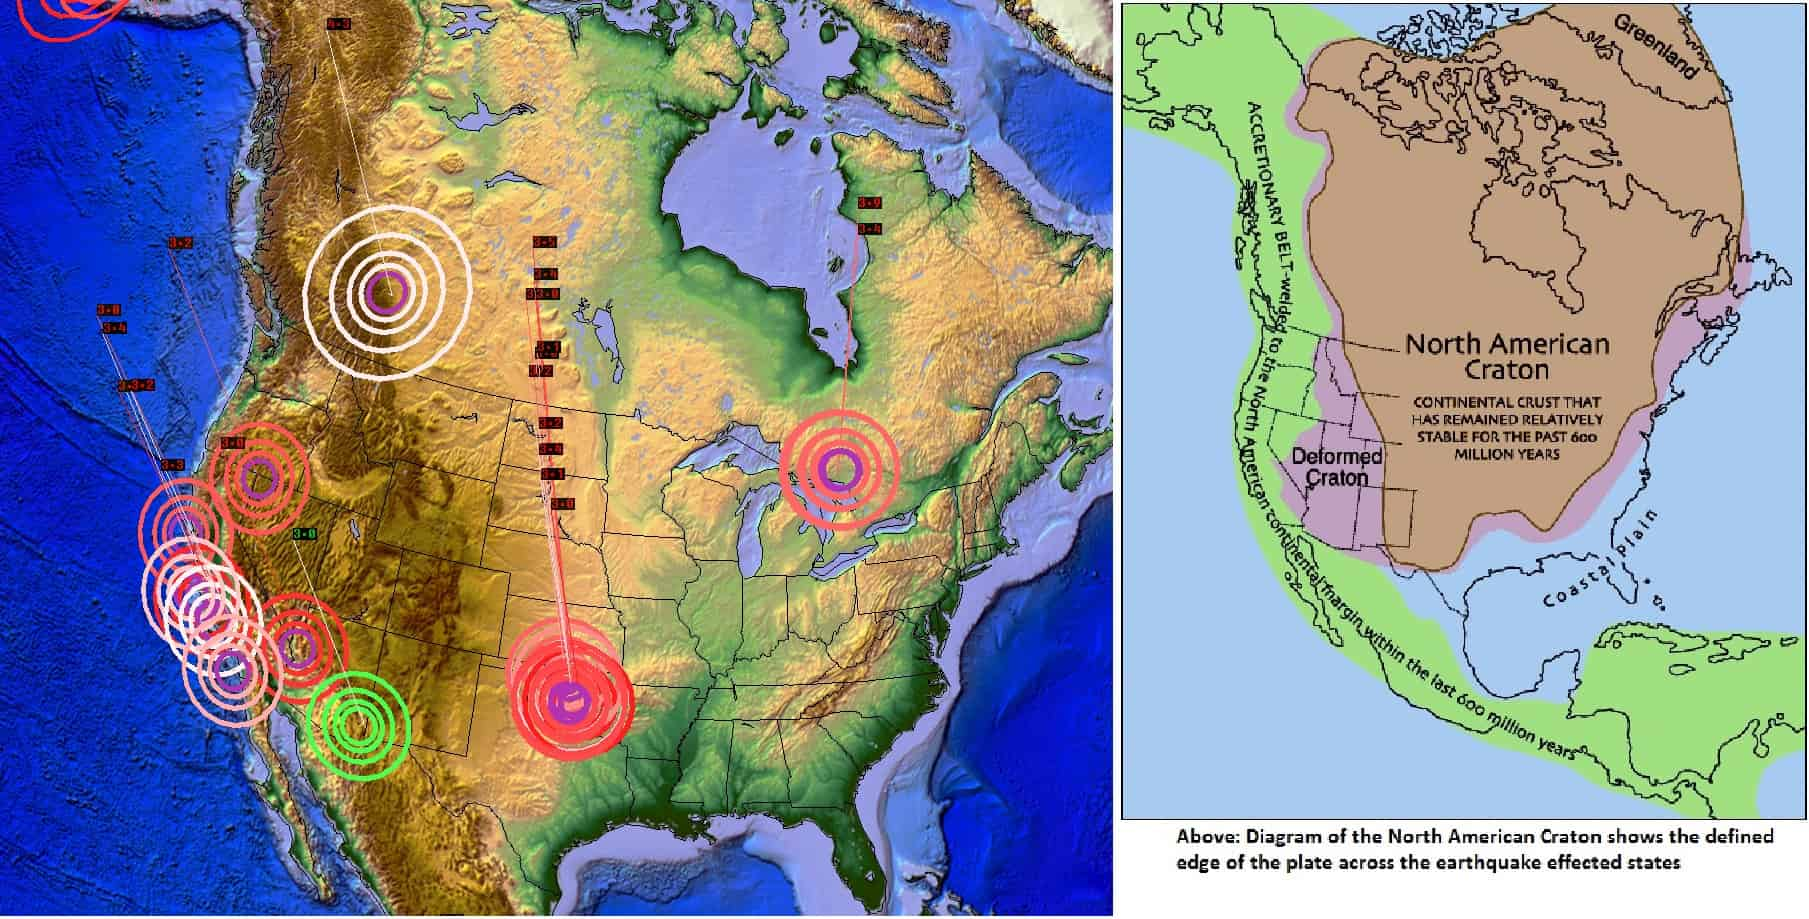 EARTHQUAKE UNREST ACROSS UNITED STATES – LARGE ICELAND VOLCANIC ERUPTION POSSIBLE